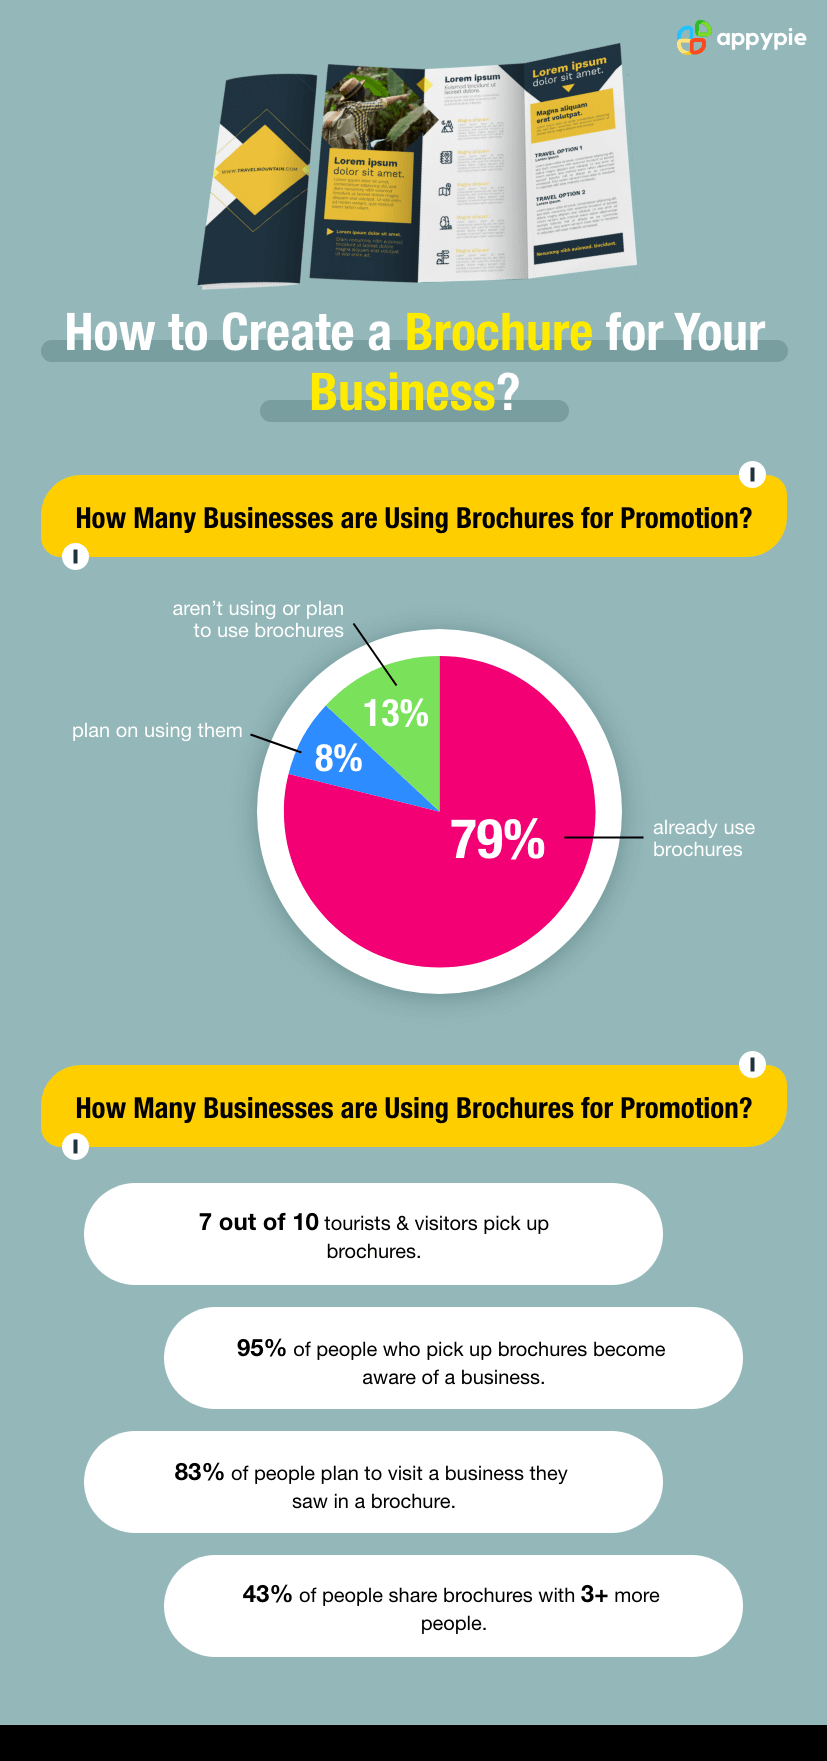 Create Brochure for business - Appy Pie